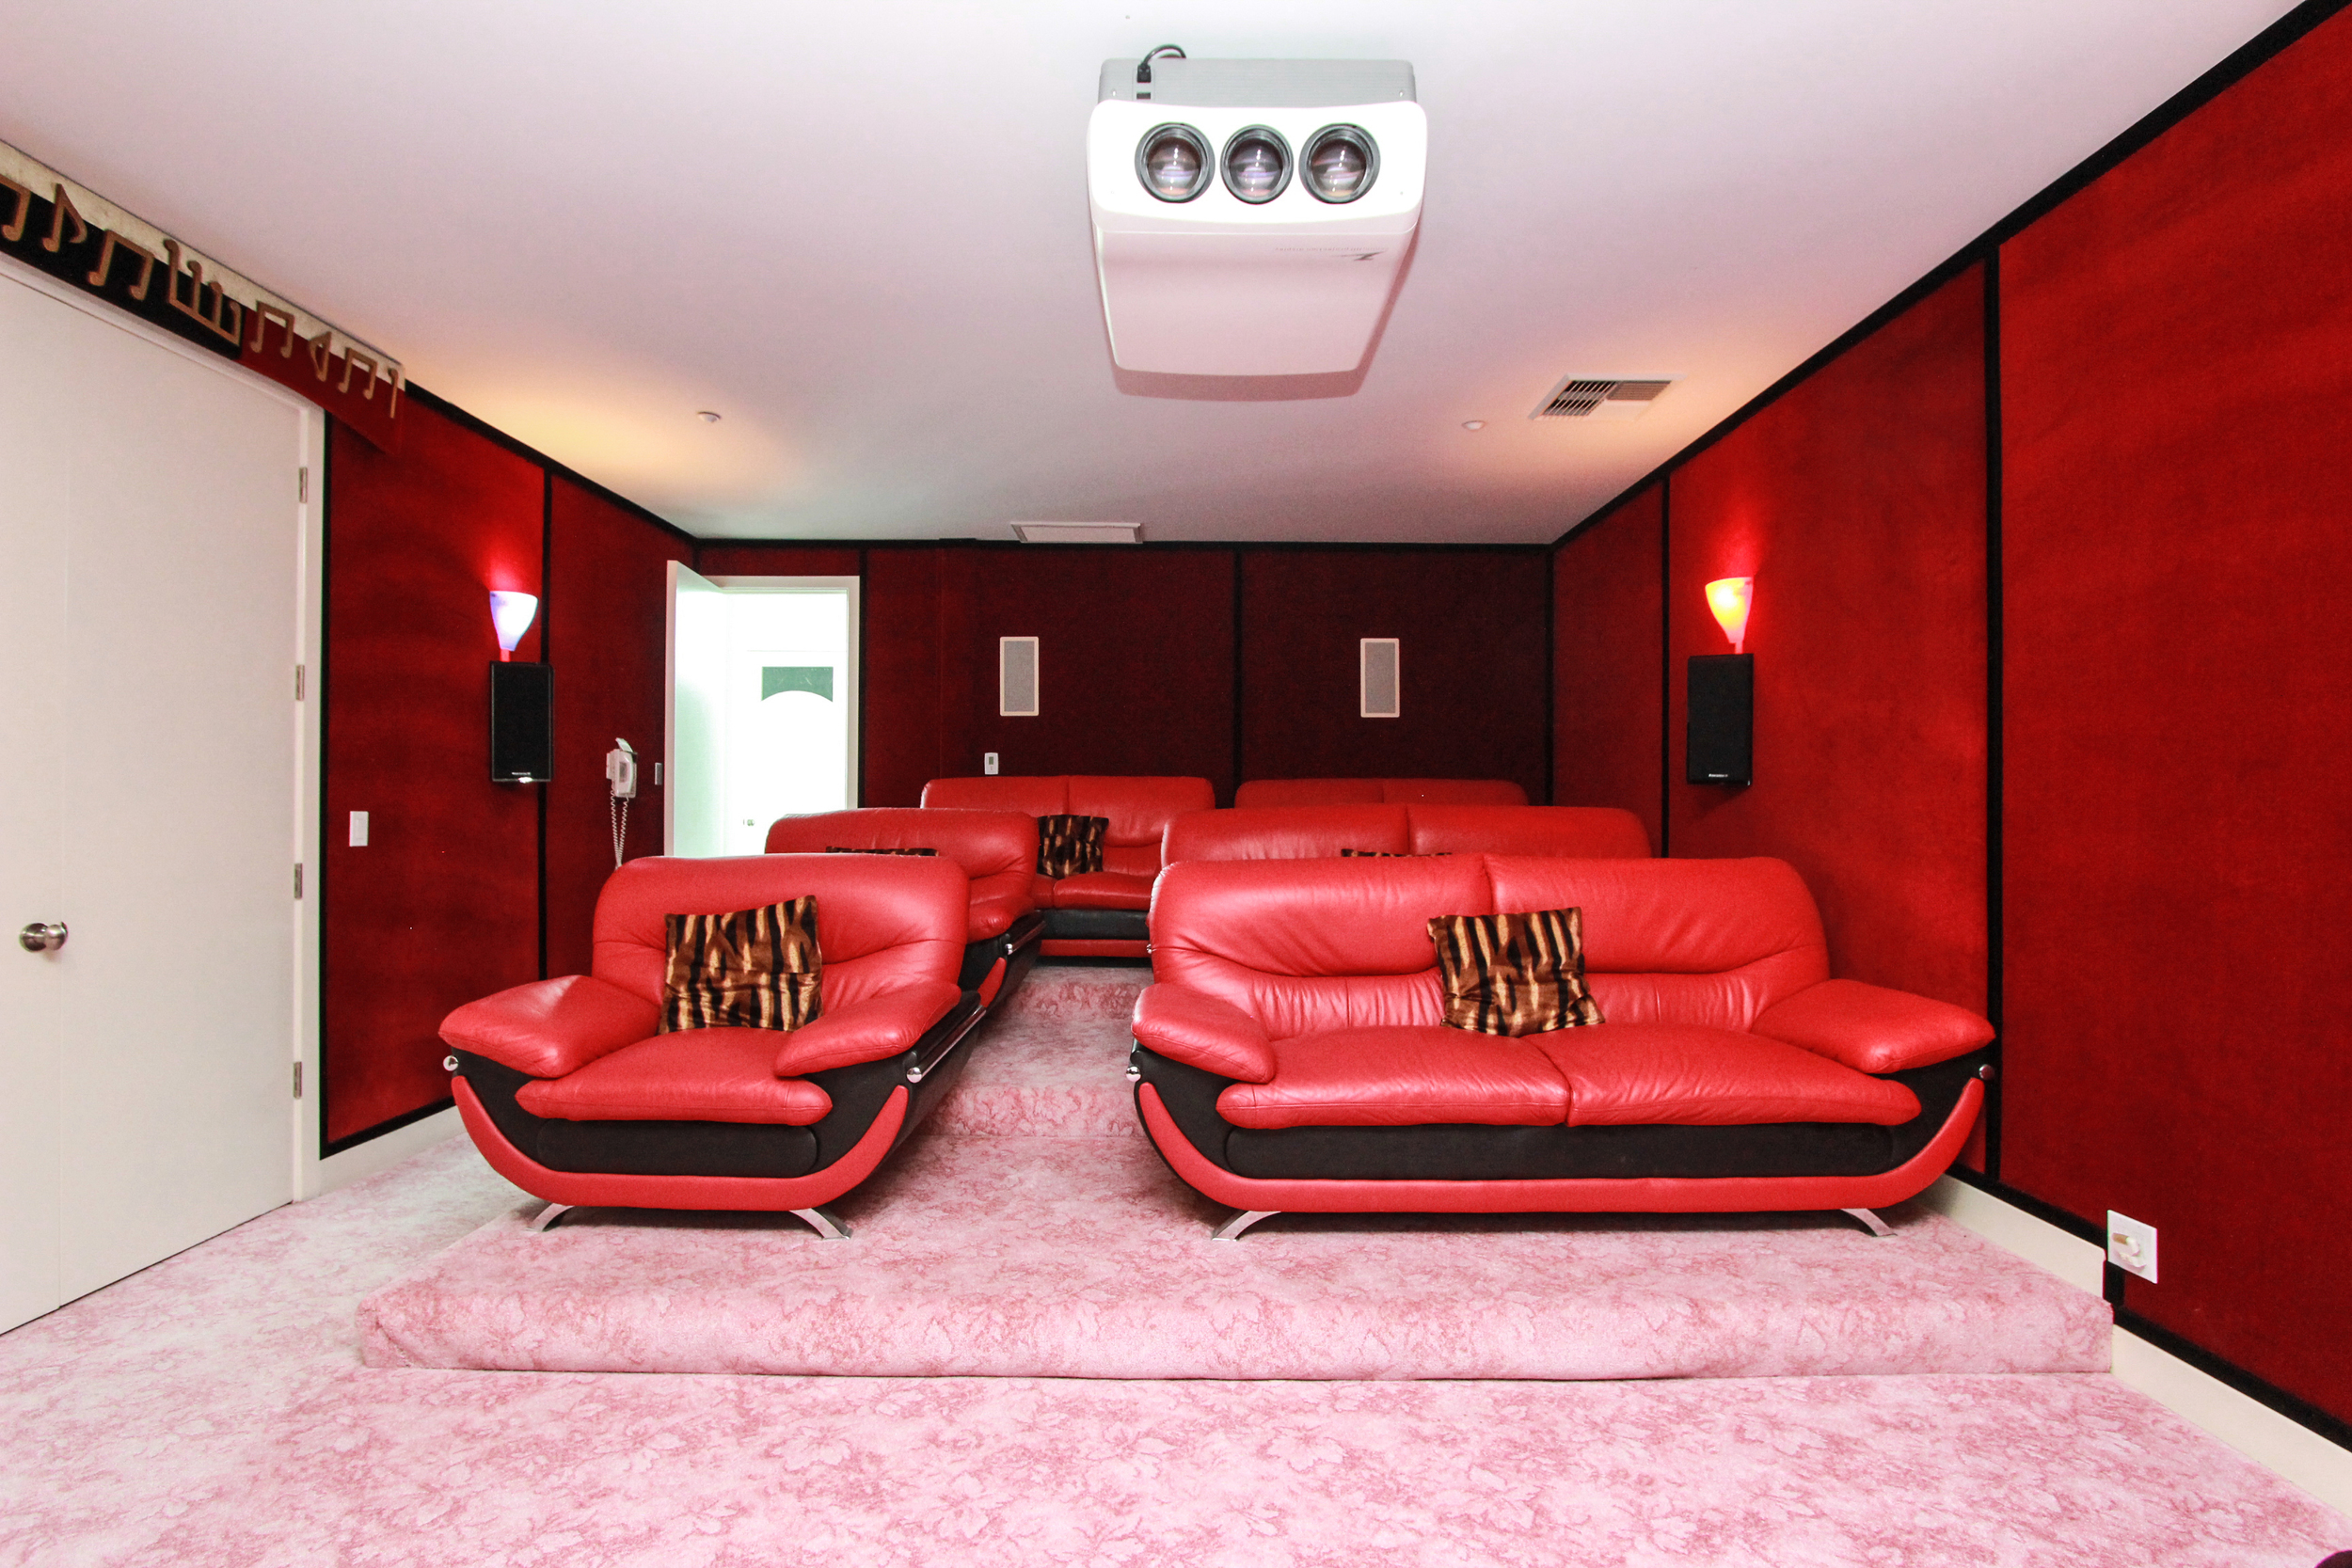 HomeTheater_2.jpg